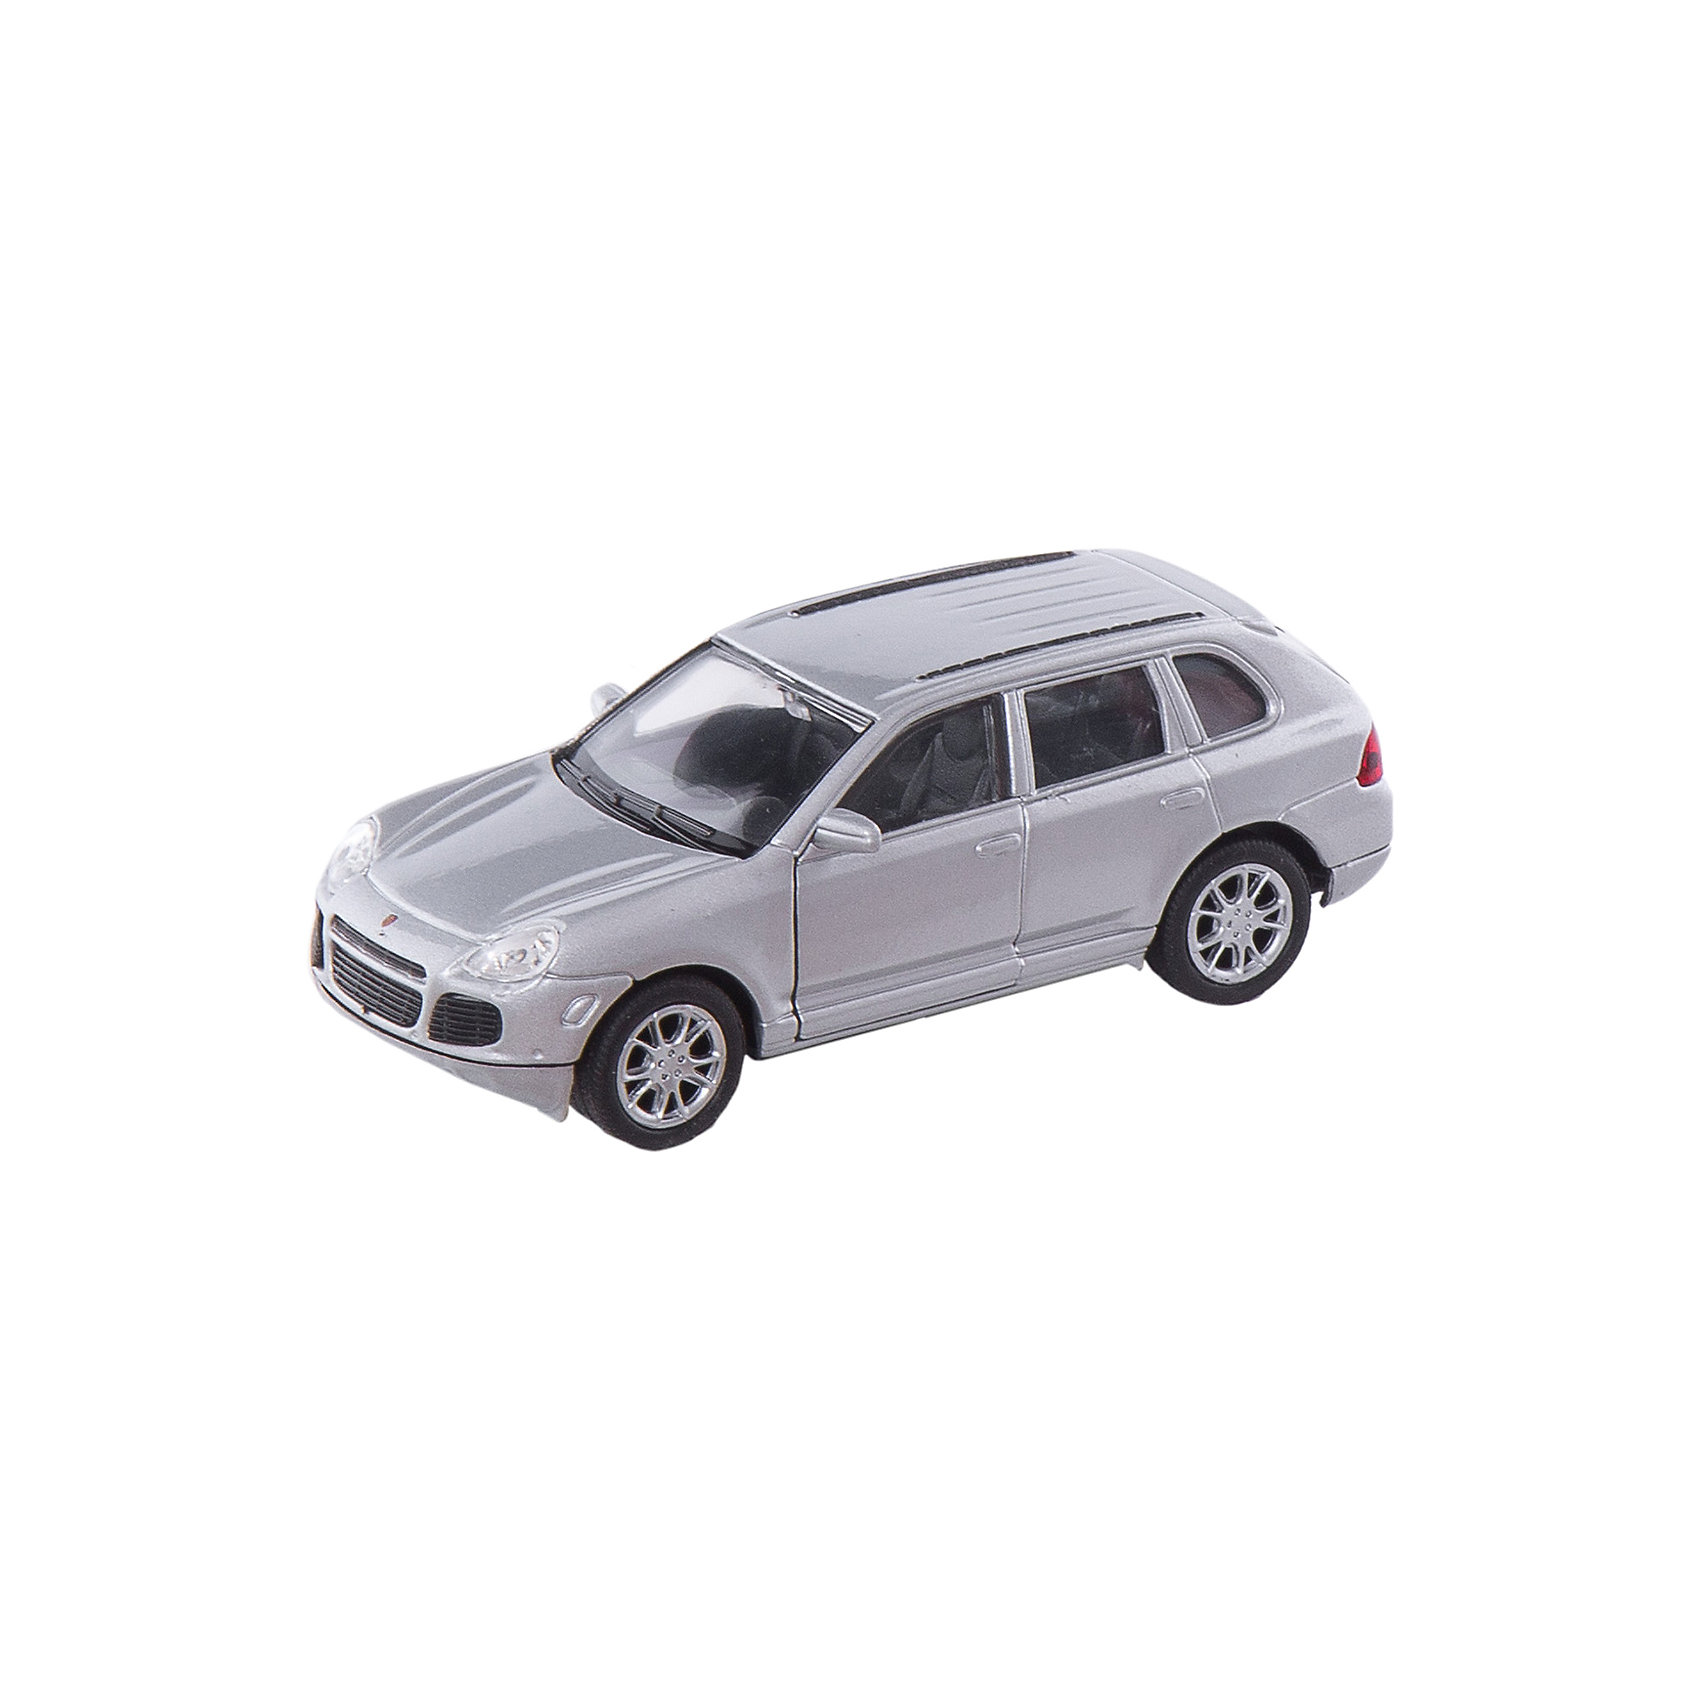 Welly Welly Модель машины 1:34-39 Porsche Cayenne Turbo welly welly гараж 3 машины и вертолет